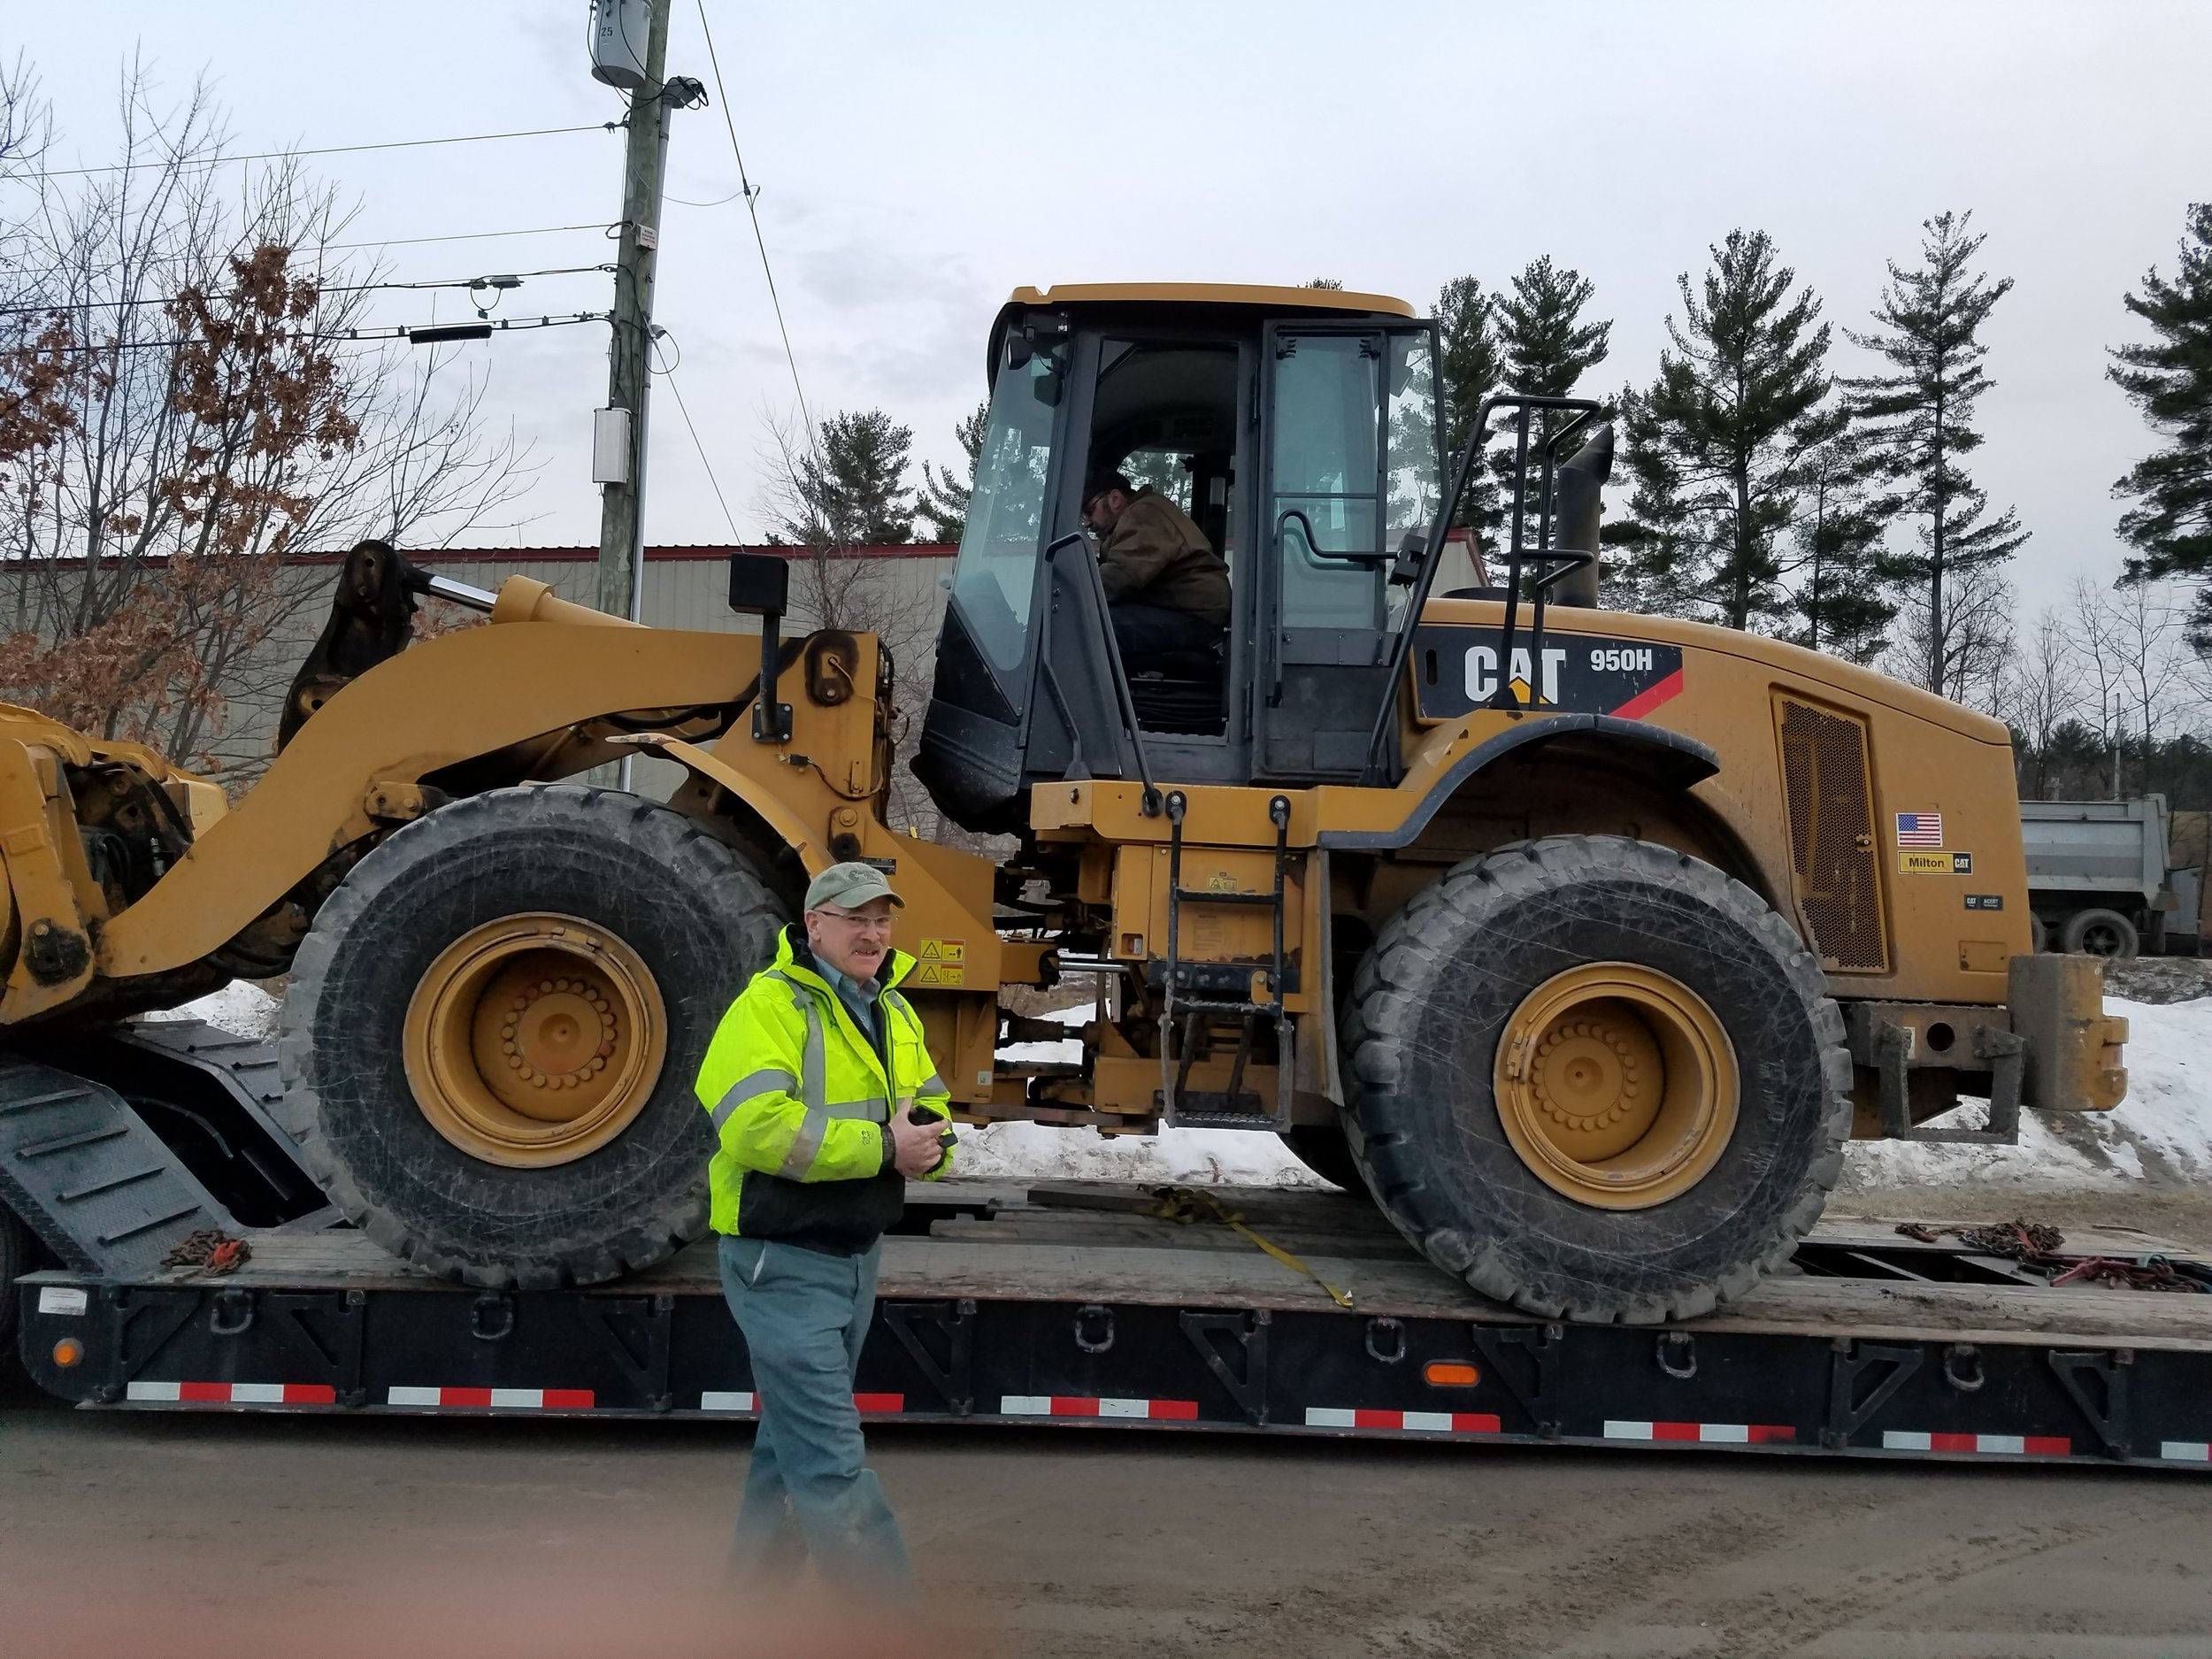 This CAT Wheel Loader - this replaces our smaller loader allowing us to be more efficient in the log yard.